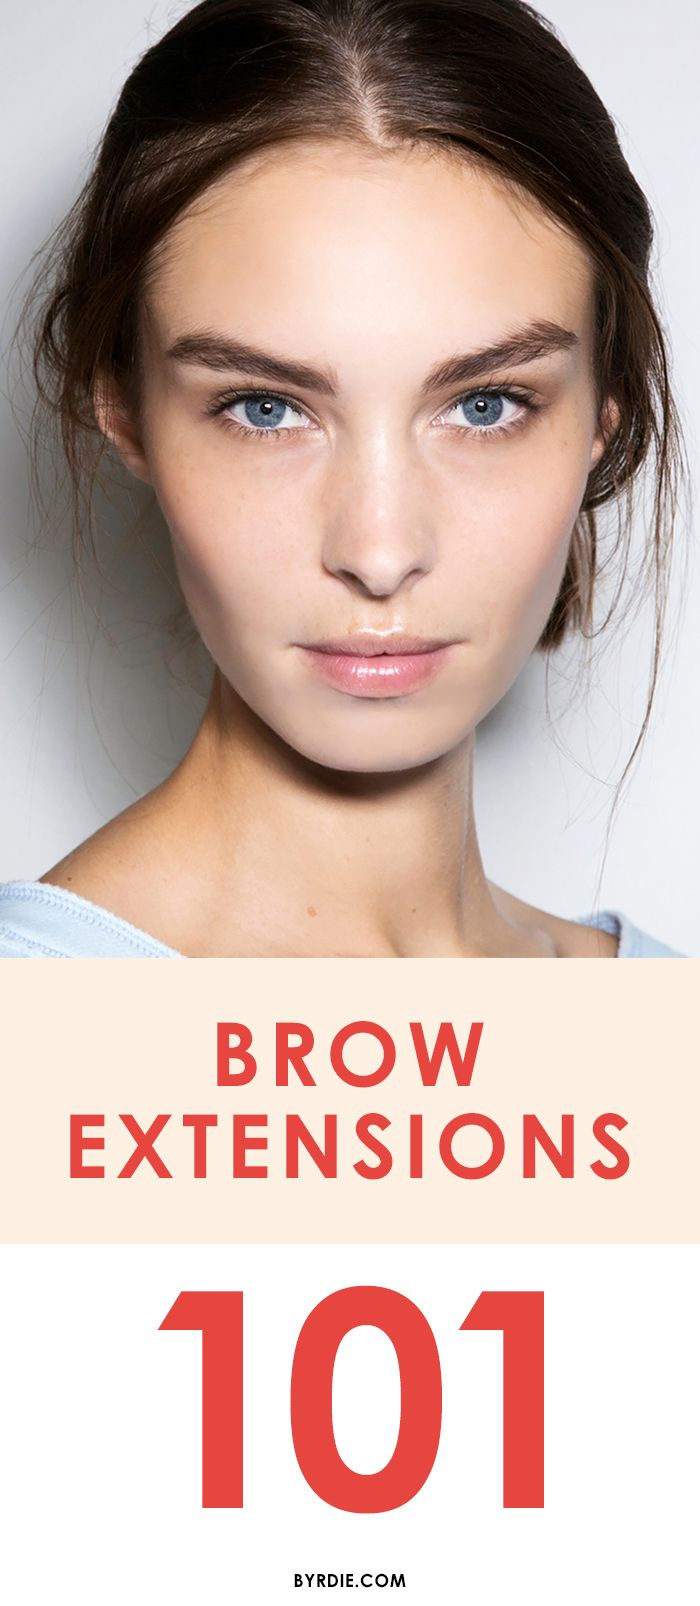 25+ best ideas about Eyebrow extensions on Pinterest | Lash ...